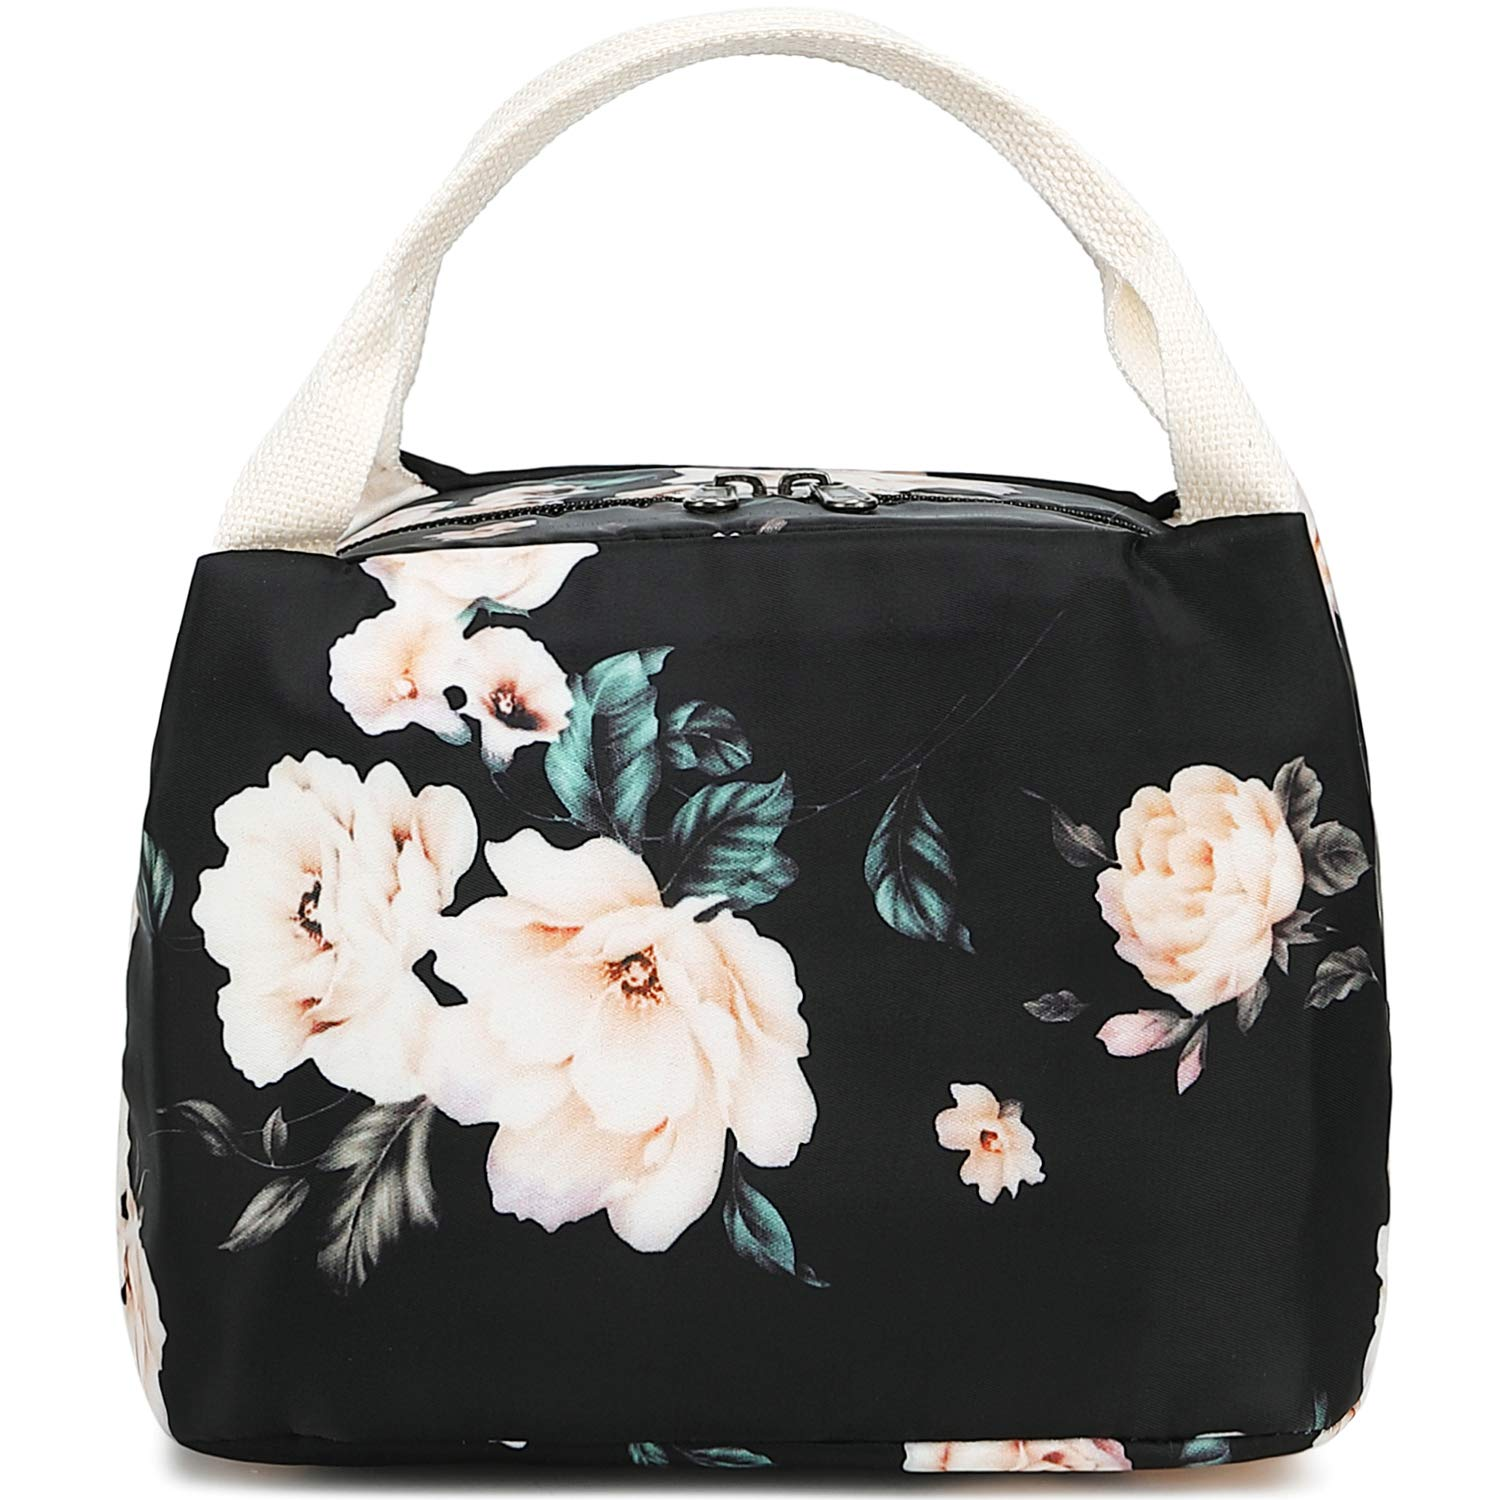 Lunch Bag Insulated Lunch Box for Women Mens Canvas Lunch Cooler Organizer School Kids Lunch Tote E0066 Black